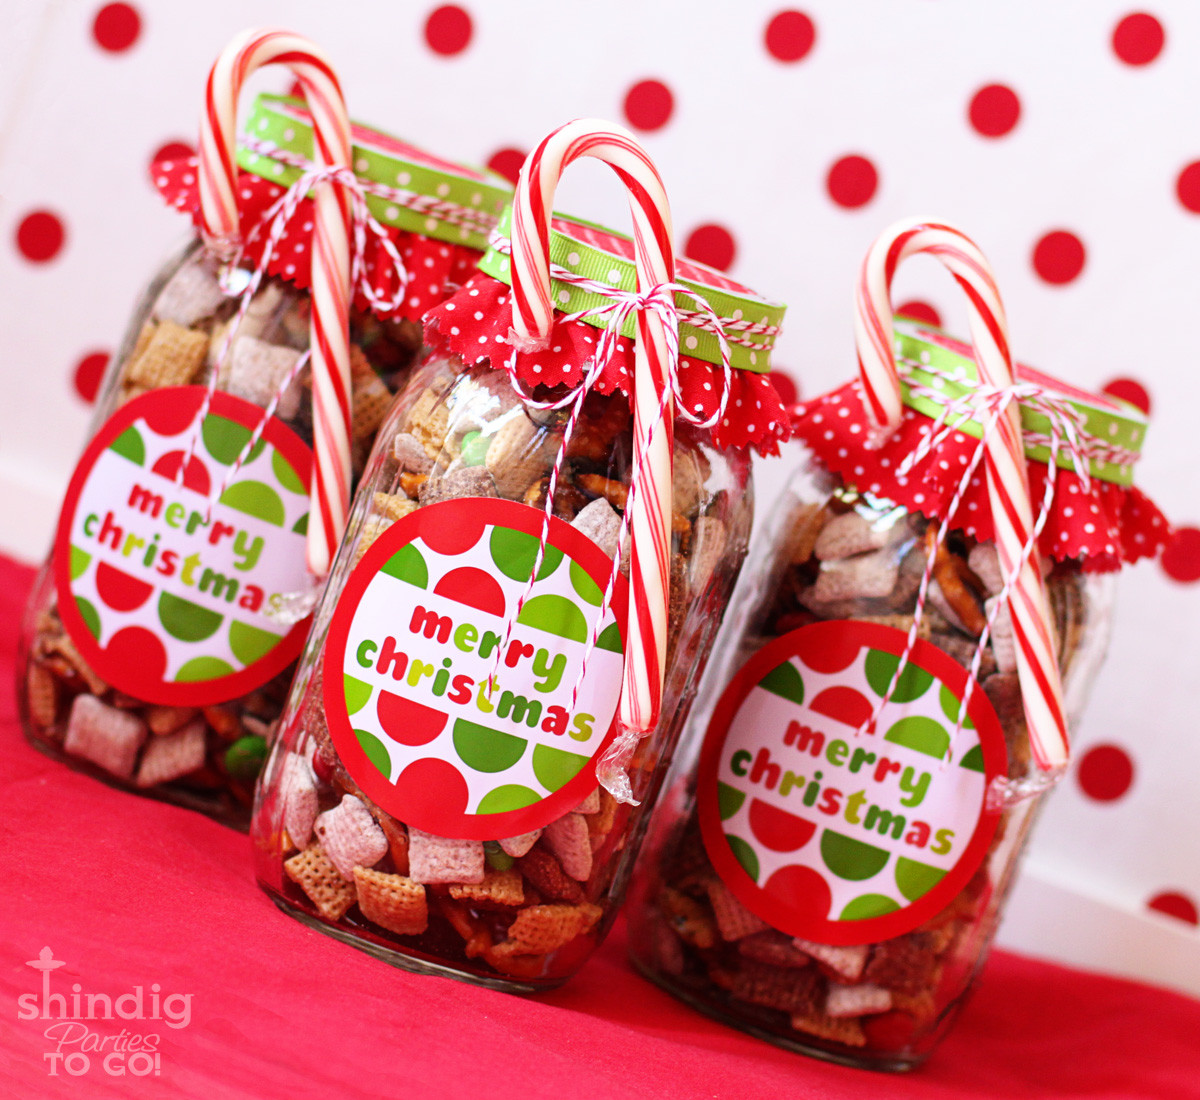 Christmas Candy Gifts  Amanda s Parties To Go FREE Merry Christmas Tags and Gift